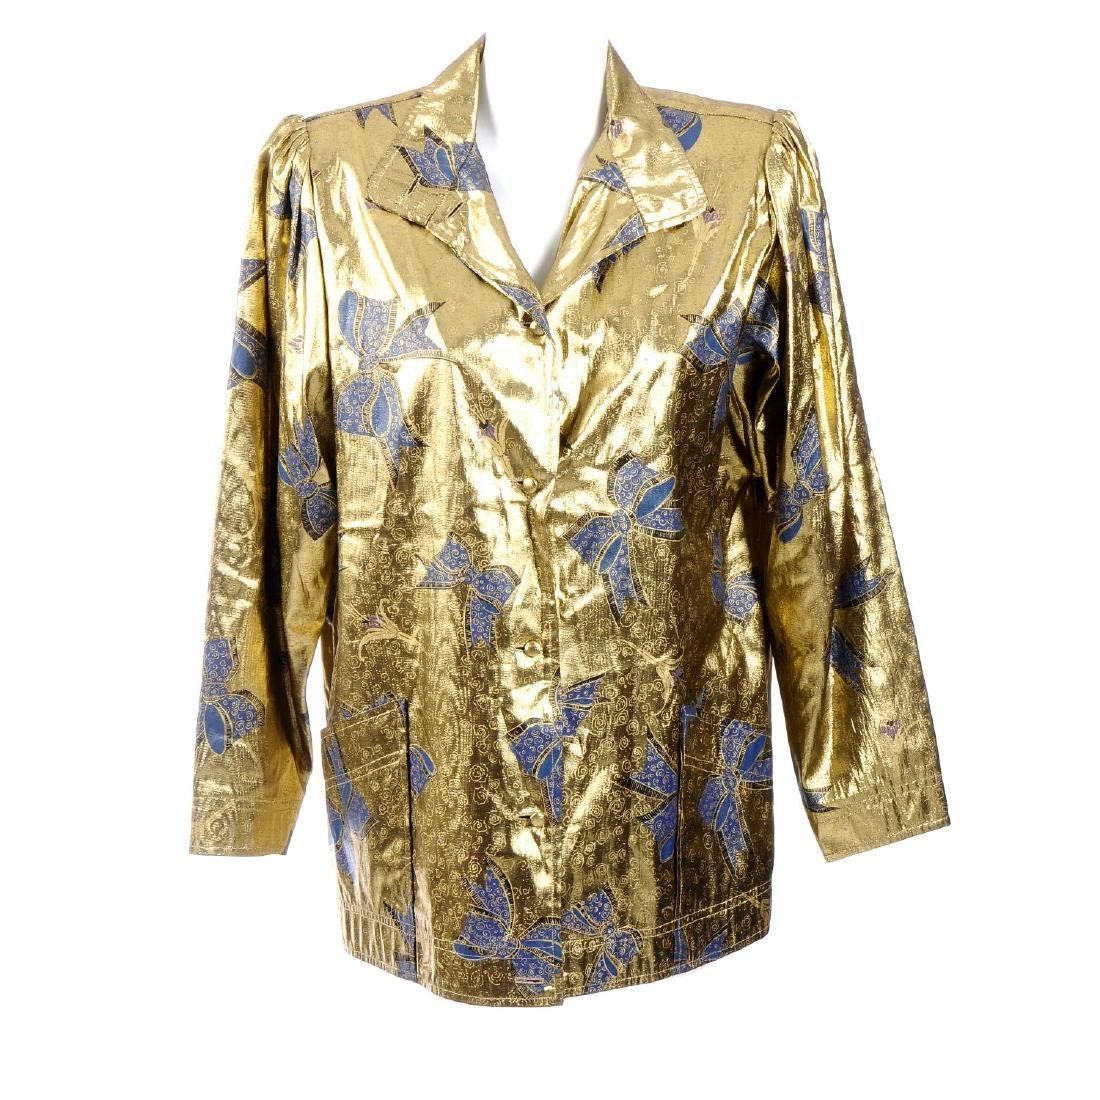 CAROLINE CHARLES - a jacket. The 1980s jacket featuring